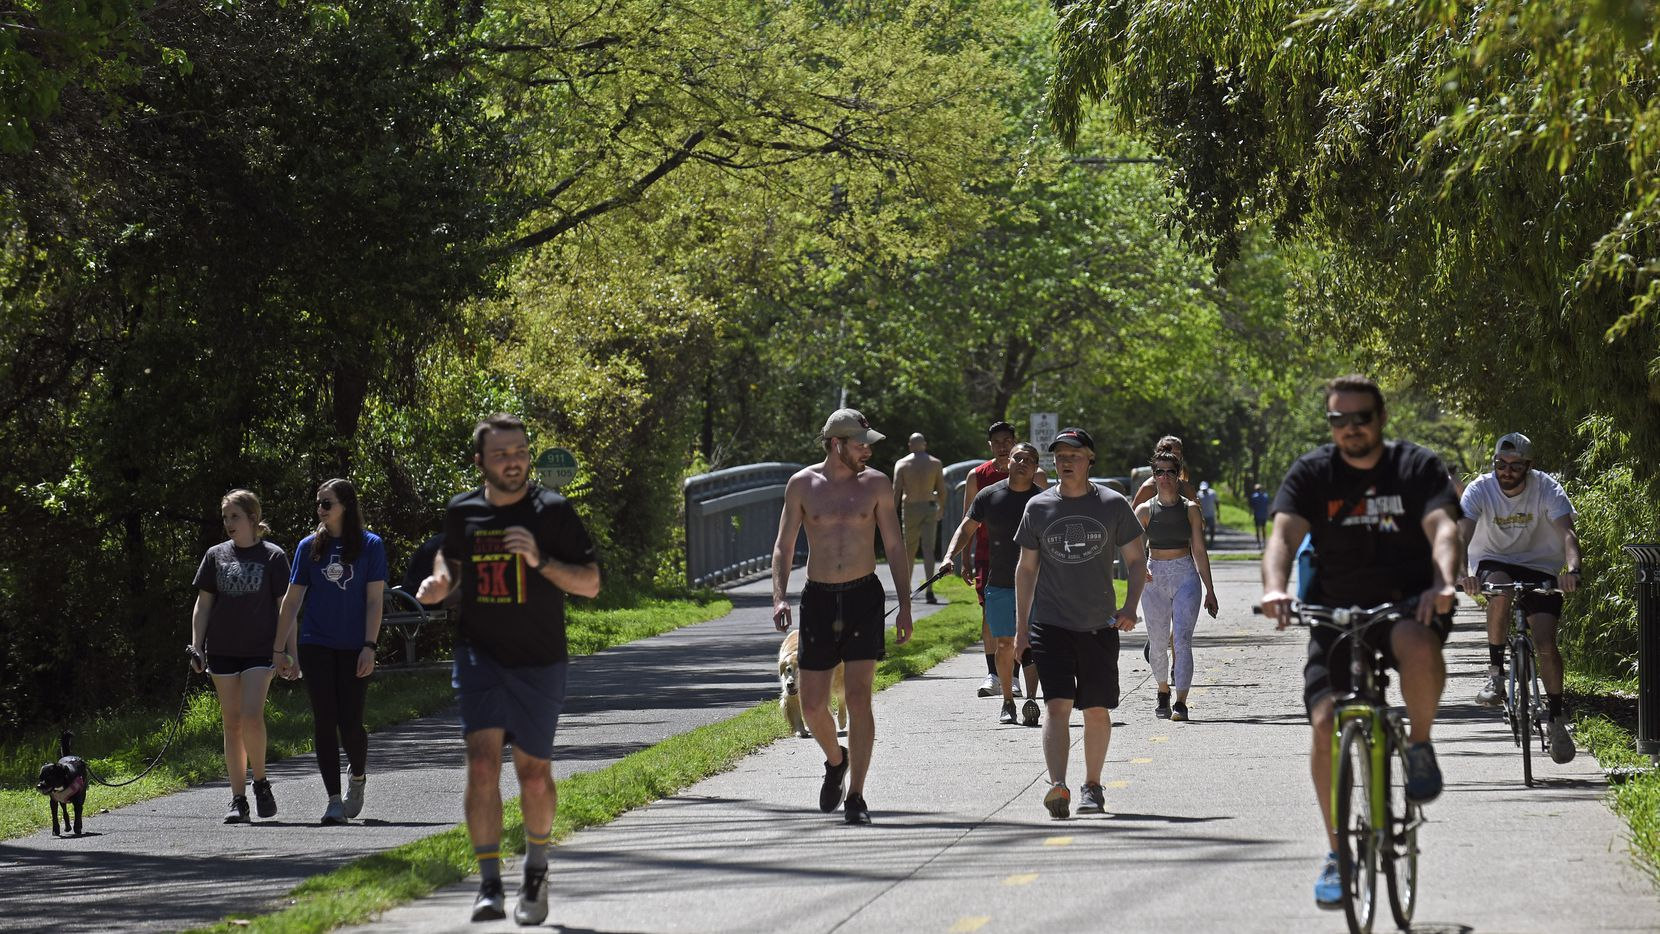 Groups of runners, cyclists and dog walkers use the Katy Trail near the Katy Trail Icehouse in Dallas on March 24, 2020. Dallas County Judge Clay Jenkins ordered residents of Dallas County to practice shelter-in-place starting Monday at 11:59pm. People can be out for essentials such as groceries, work and exercise, but must practice social distancing.